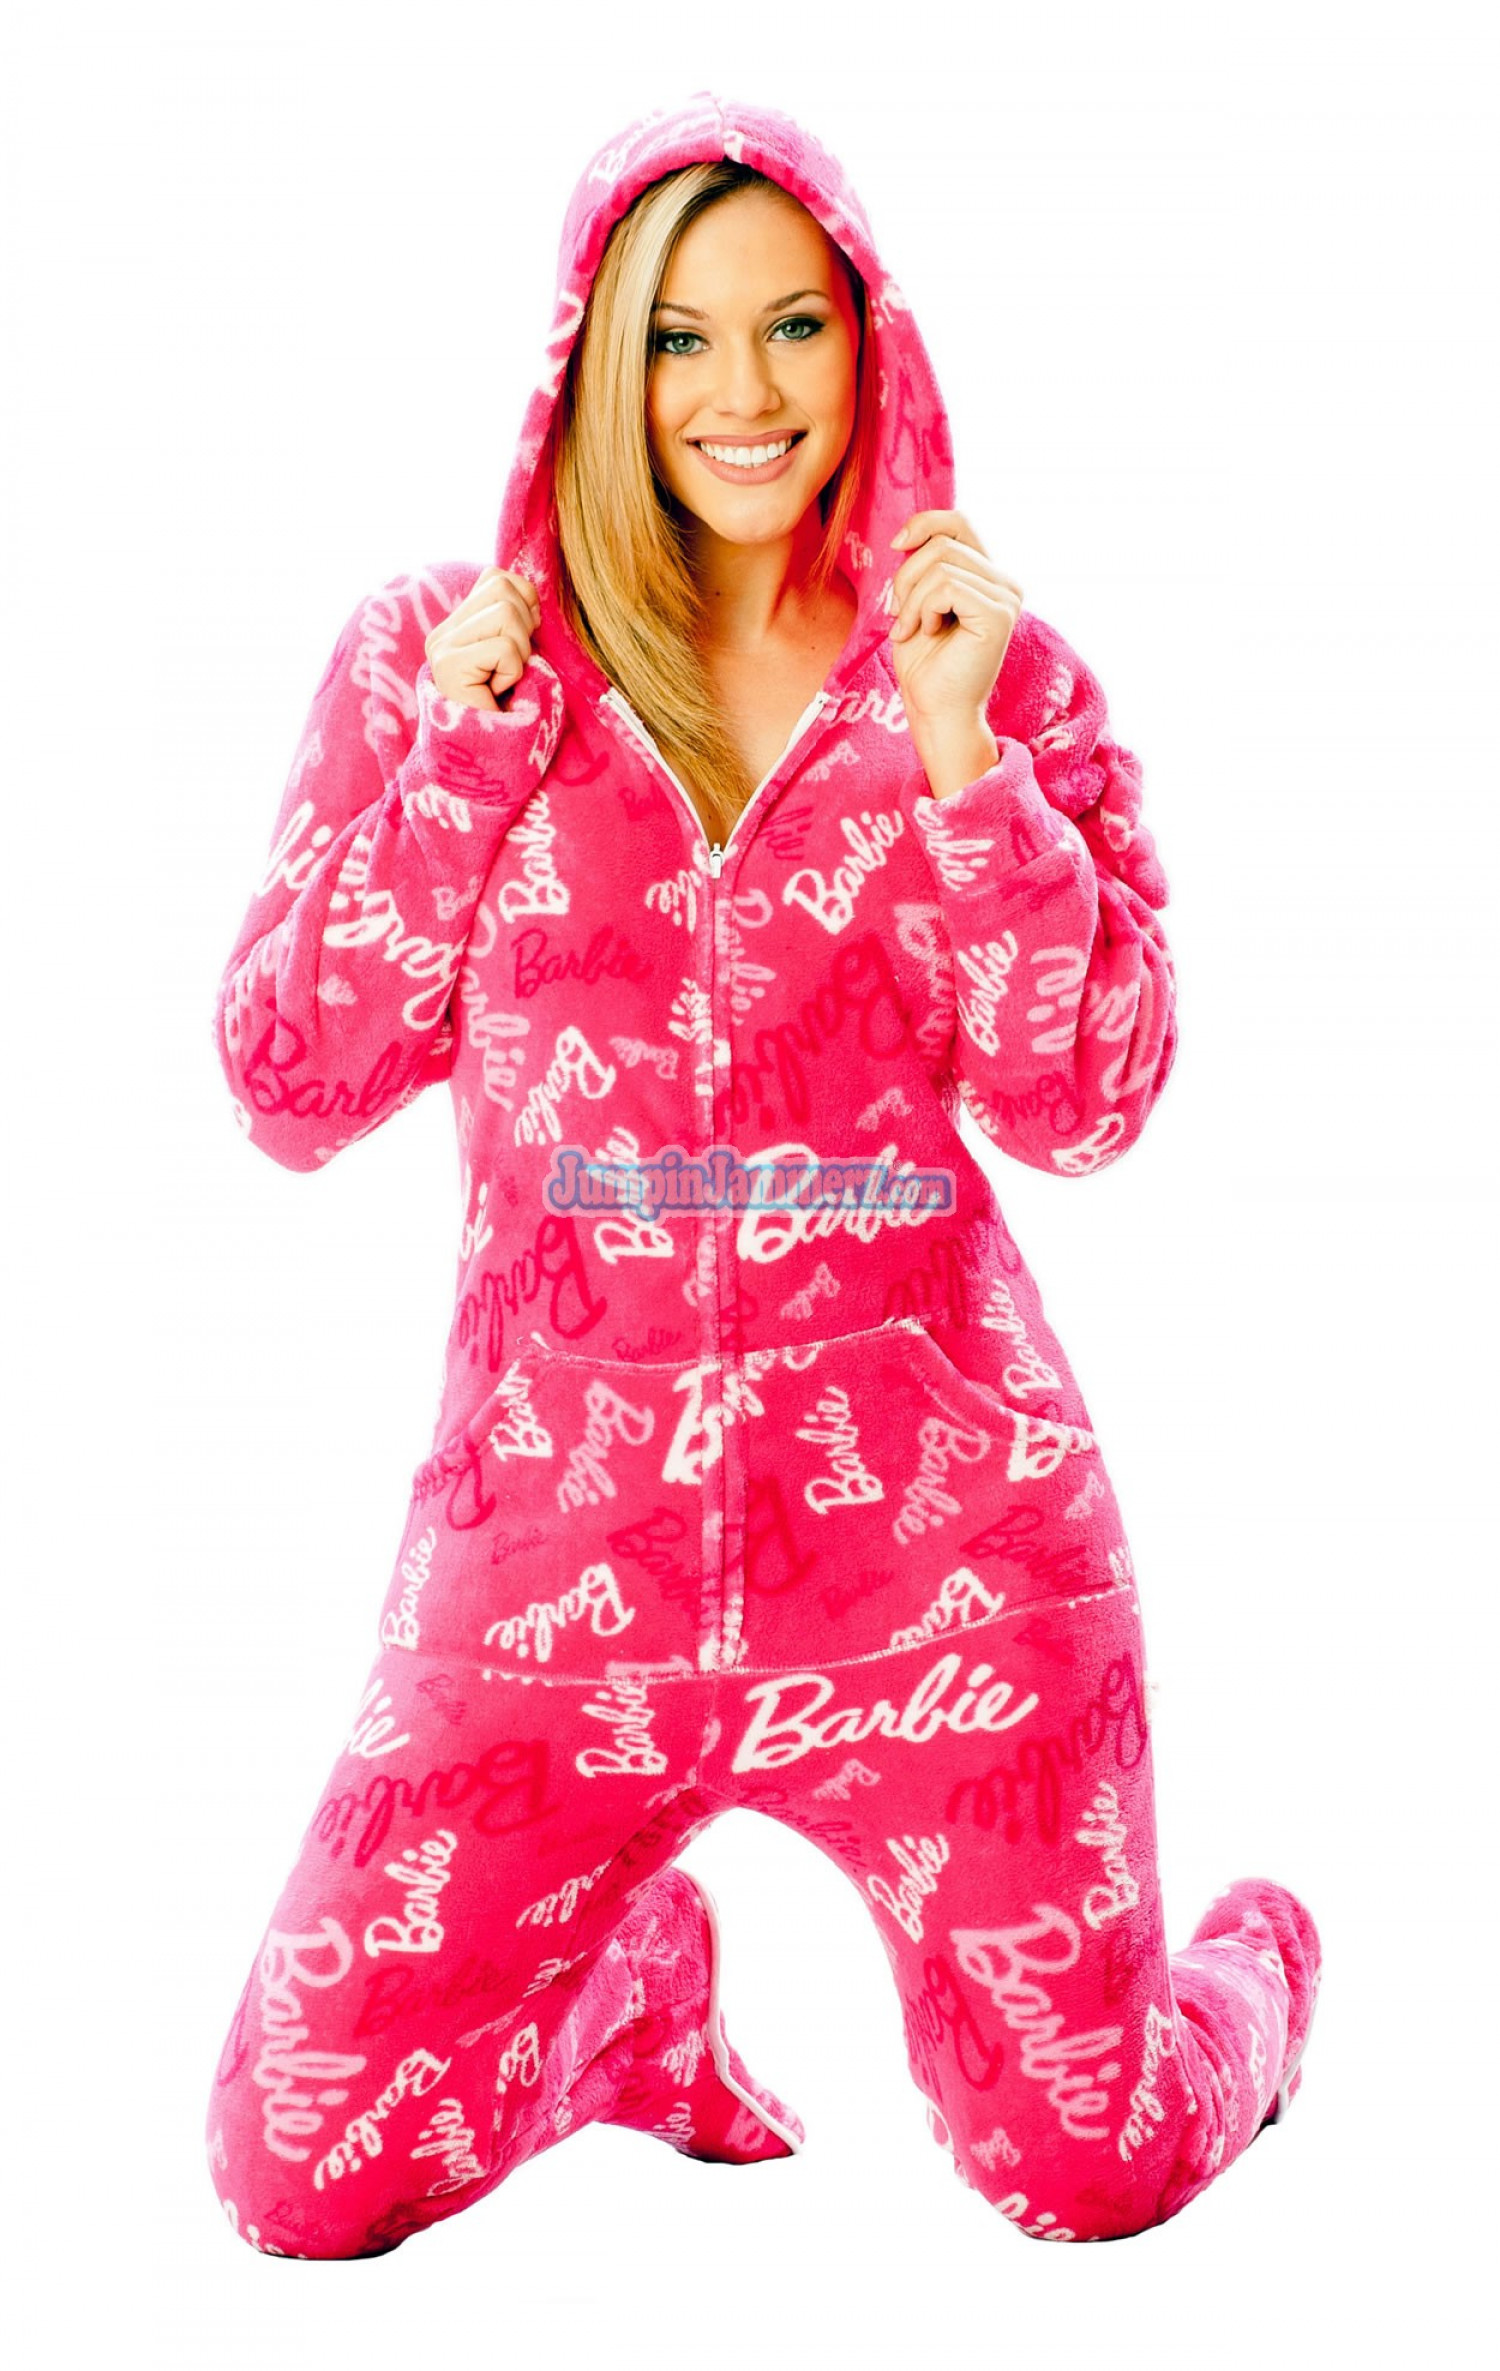 Adult onesie pajamas from $ Over 40 fun styles in stock! Free 3-day shipping on orders over $ Free Shipping To USA The adult onesies modeled by women are women's sizes, but men can wear them too! The model pictured below is 5' 9